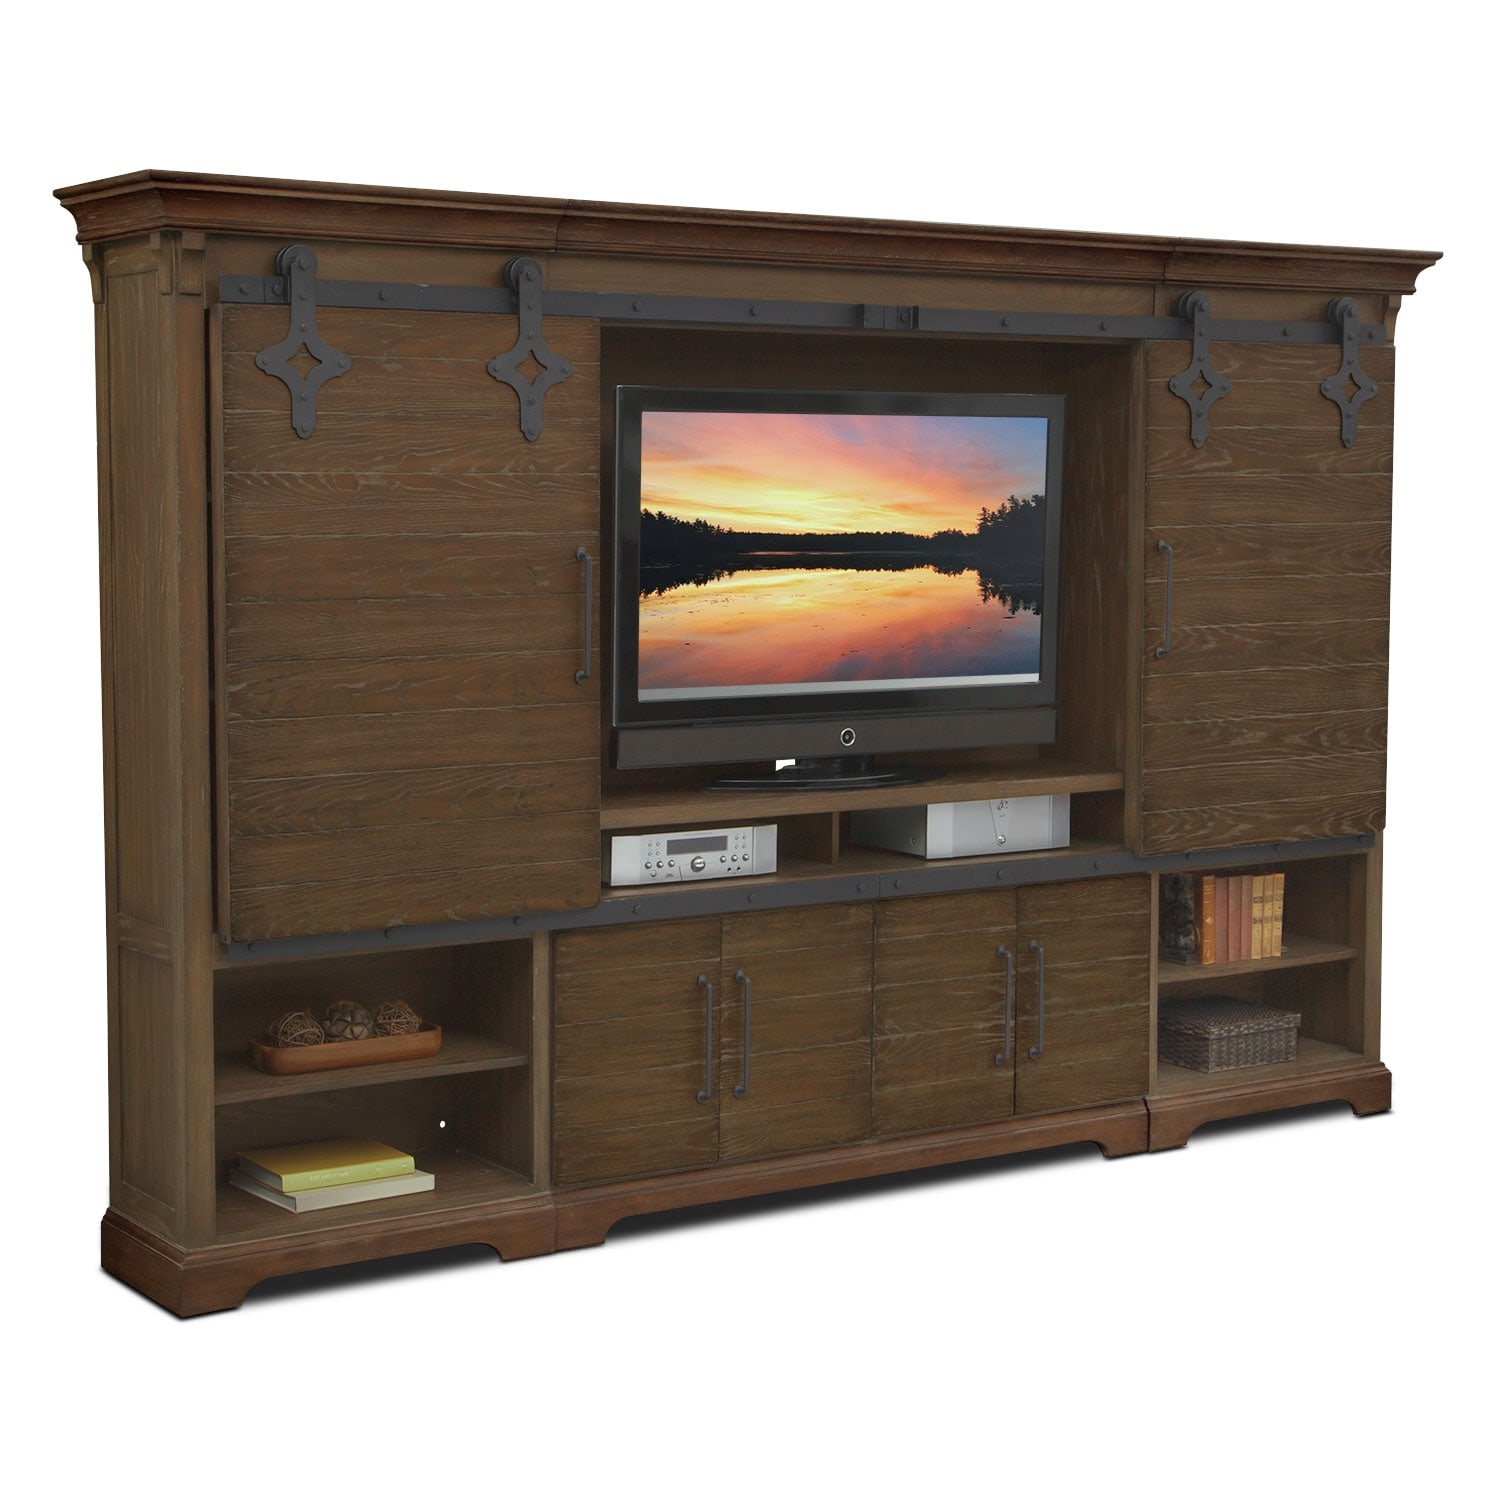 Awesome Entertainment Furniture   Union City Entertainment Wall Unit   Brown